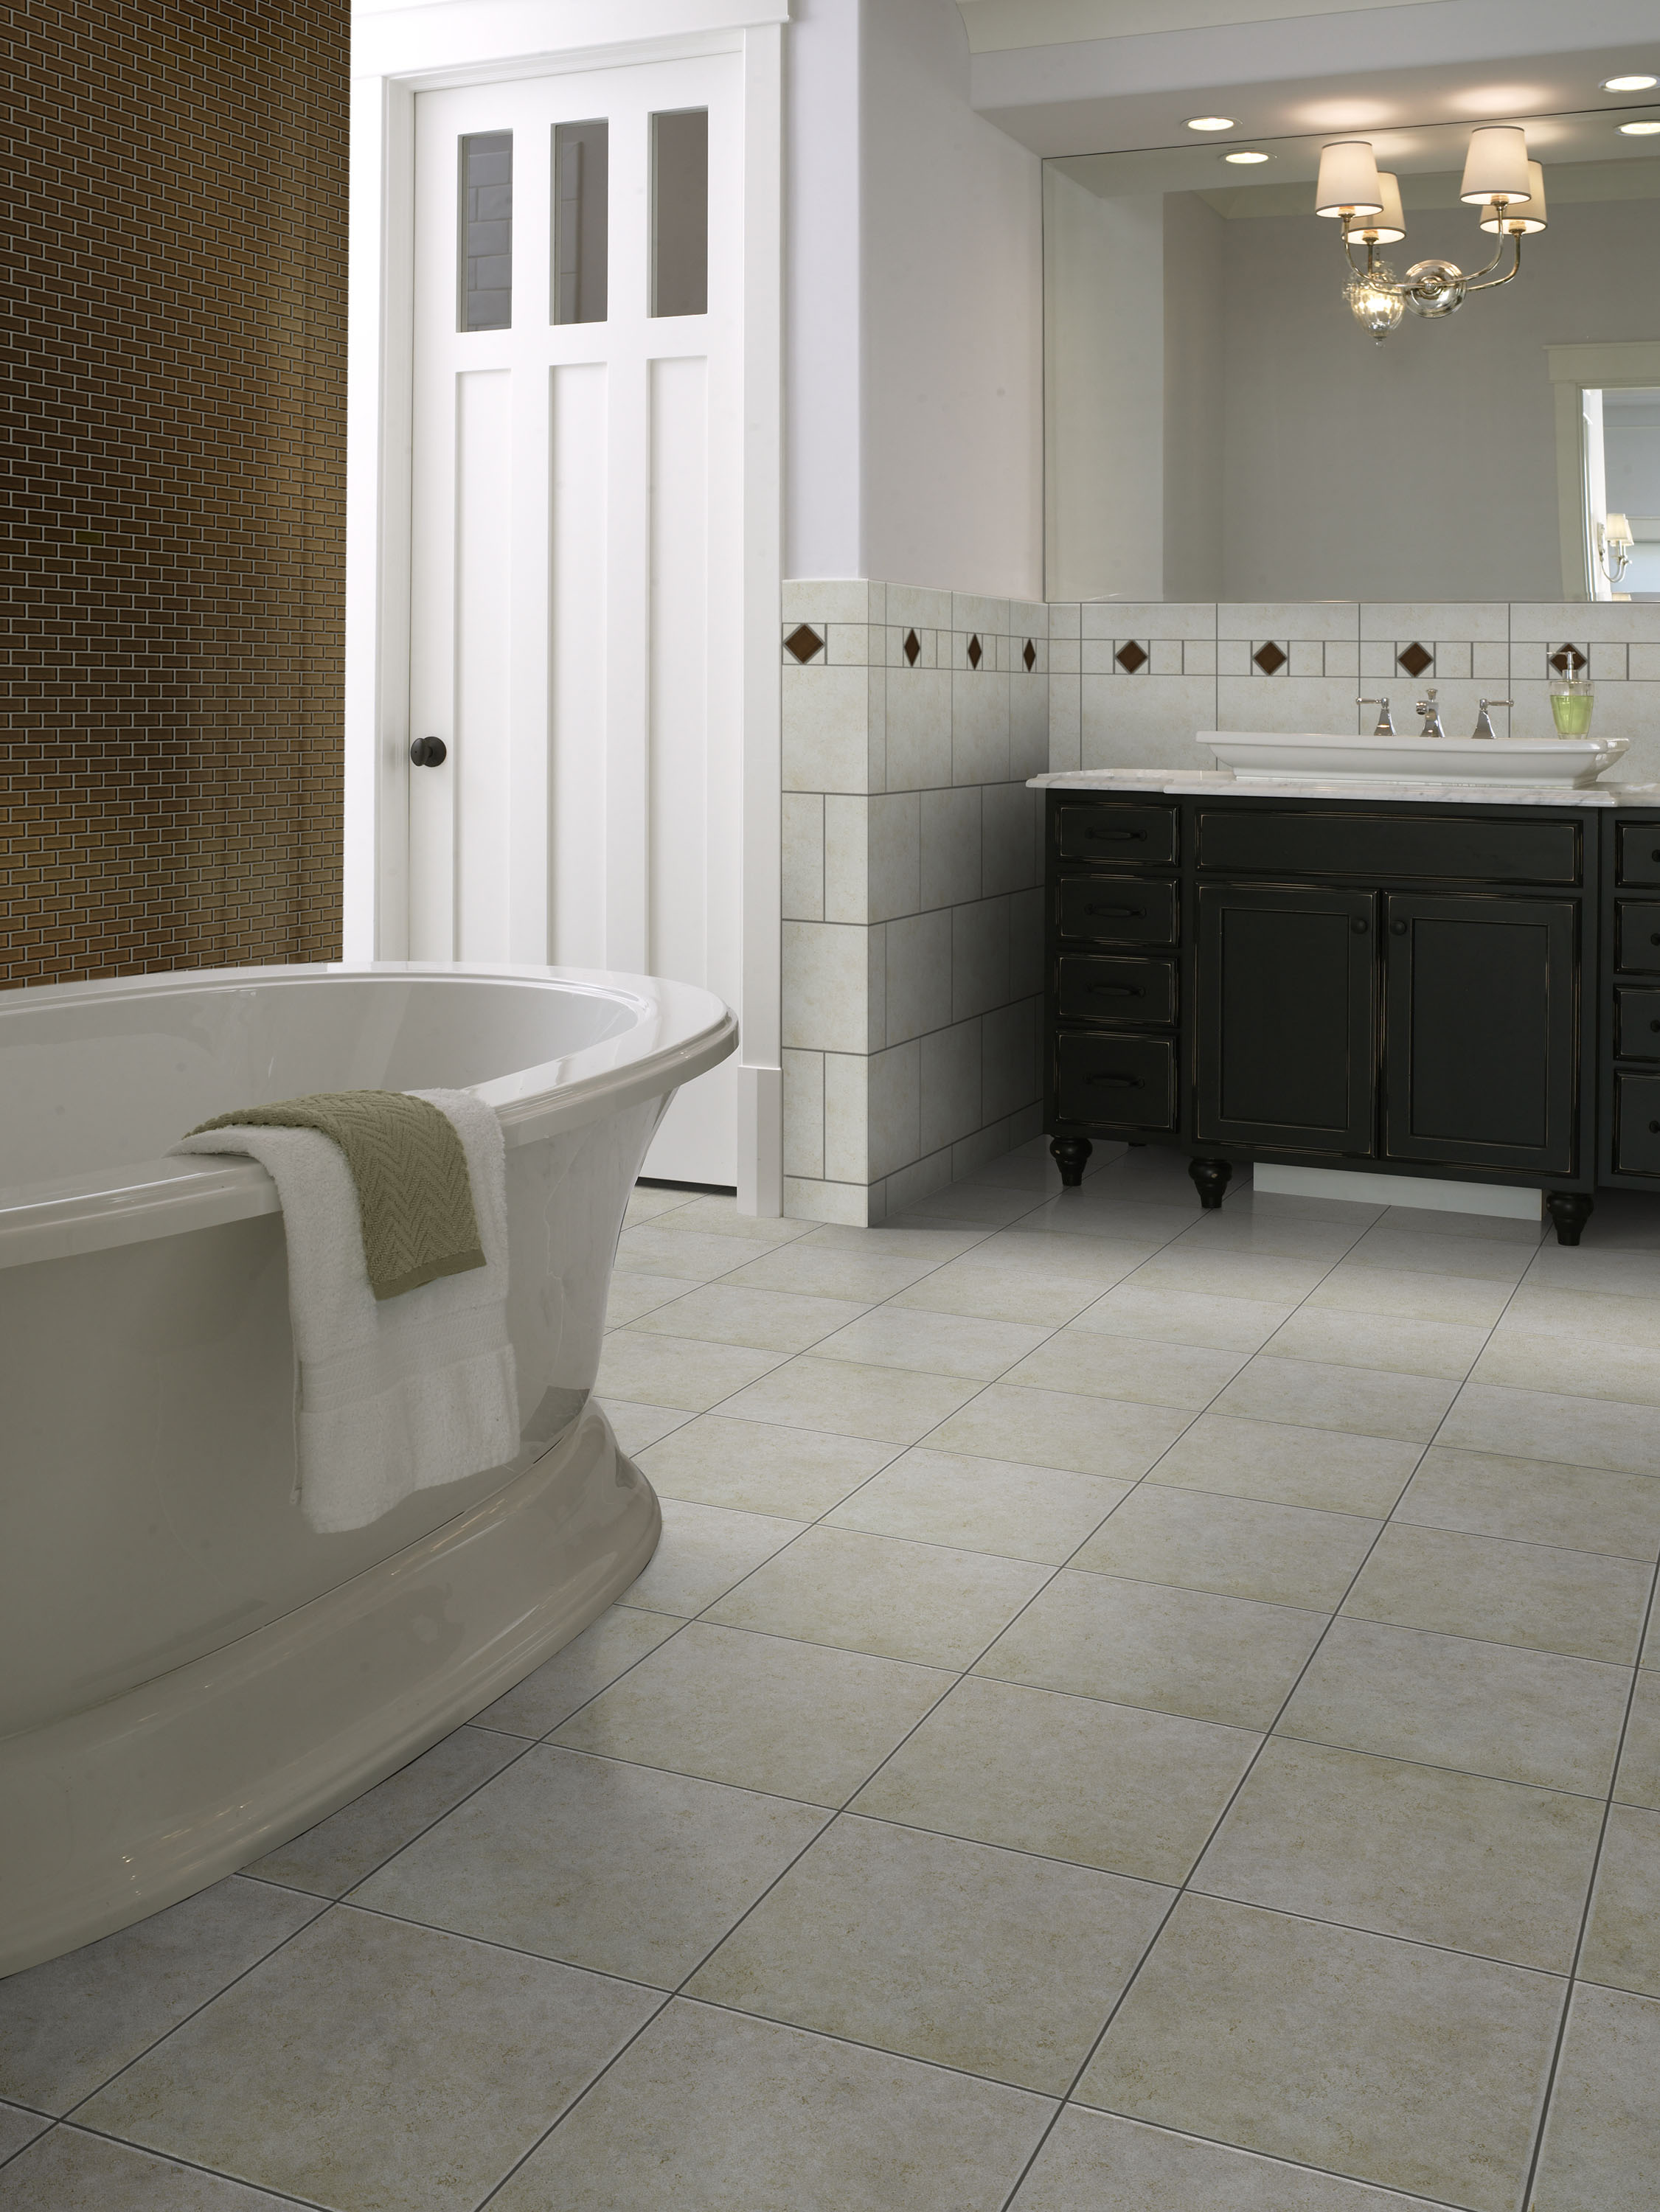 3 advantages of tile flooring outer banks floor covering inc 3 advantages of tile flooring dailygadgetfo Image collections